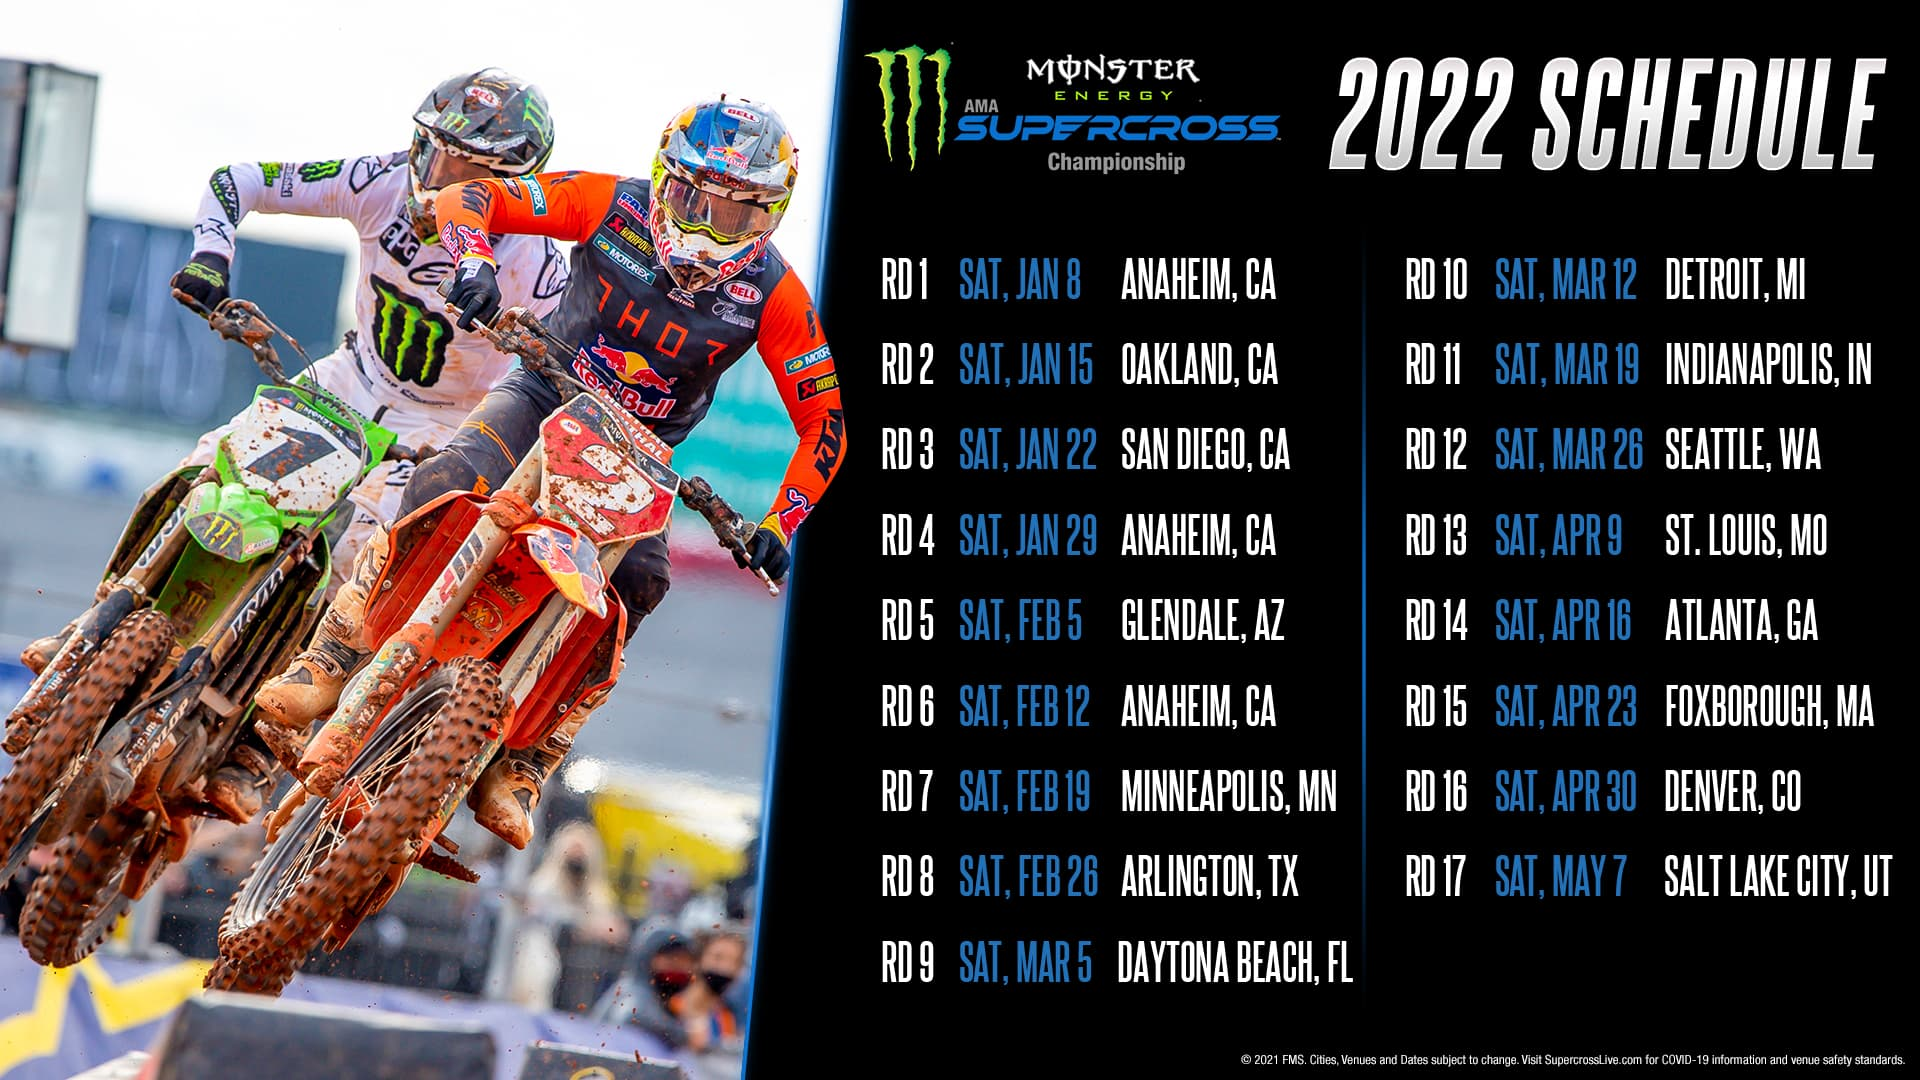 The 2022 Monster Energy AMA Supercross Championship schedule has been released.